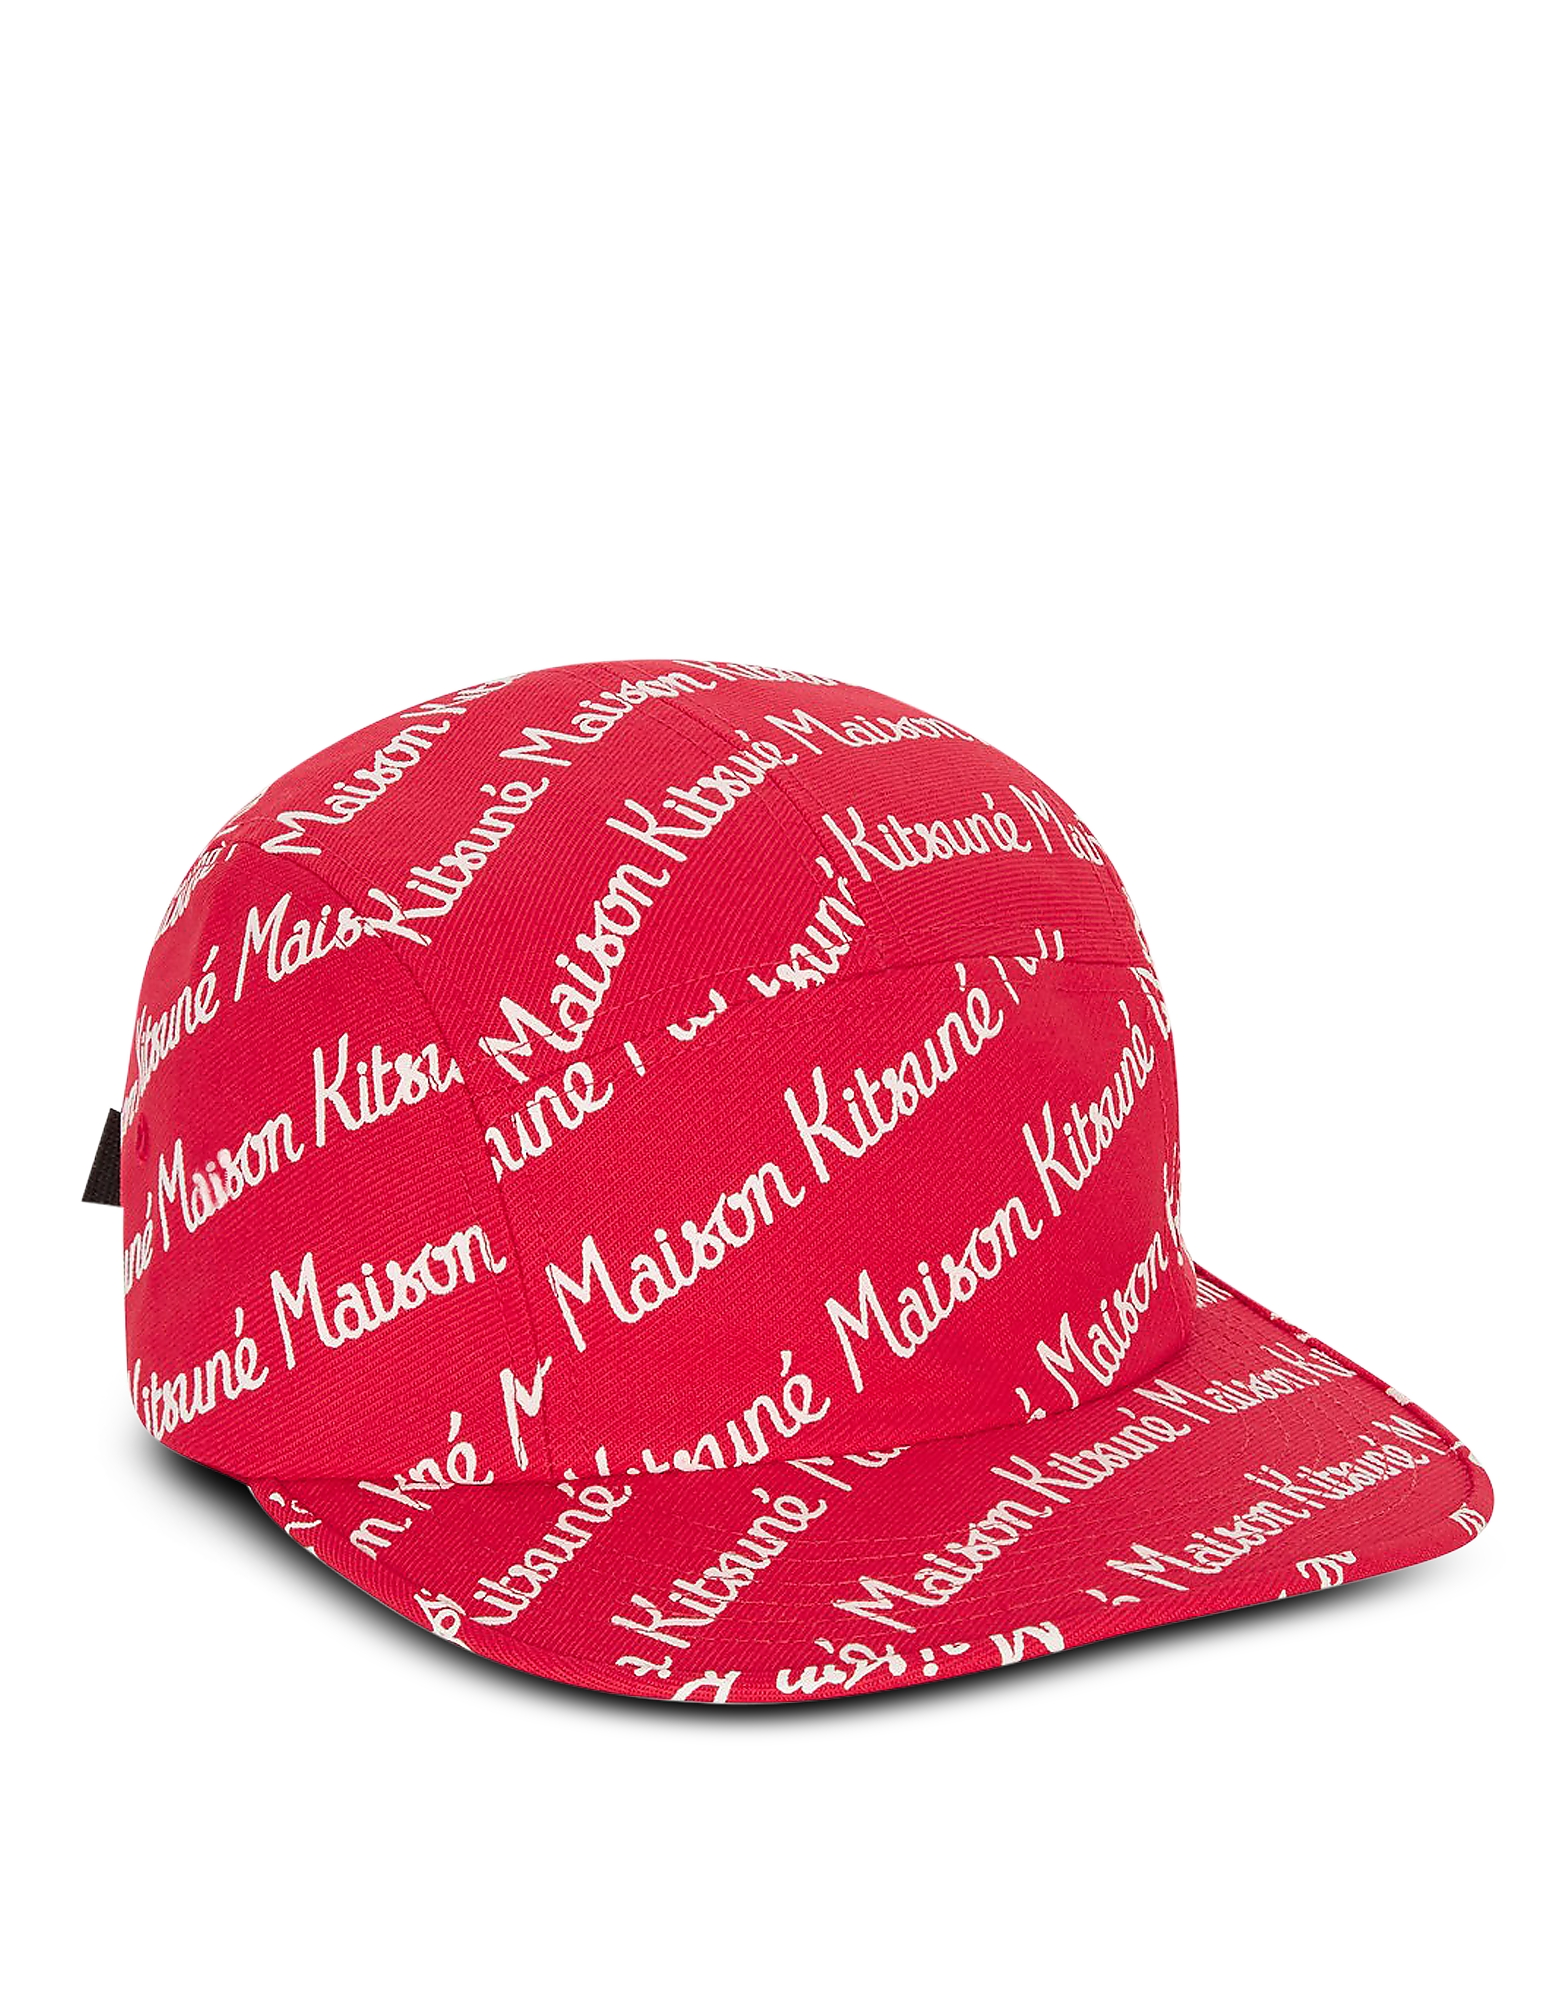 Maison Kitsuné Designer Men's Hats, Maison Kitsune 5P Red Cotton Canvas Baseball Cap